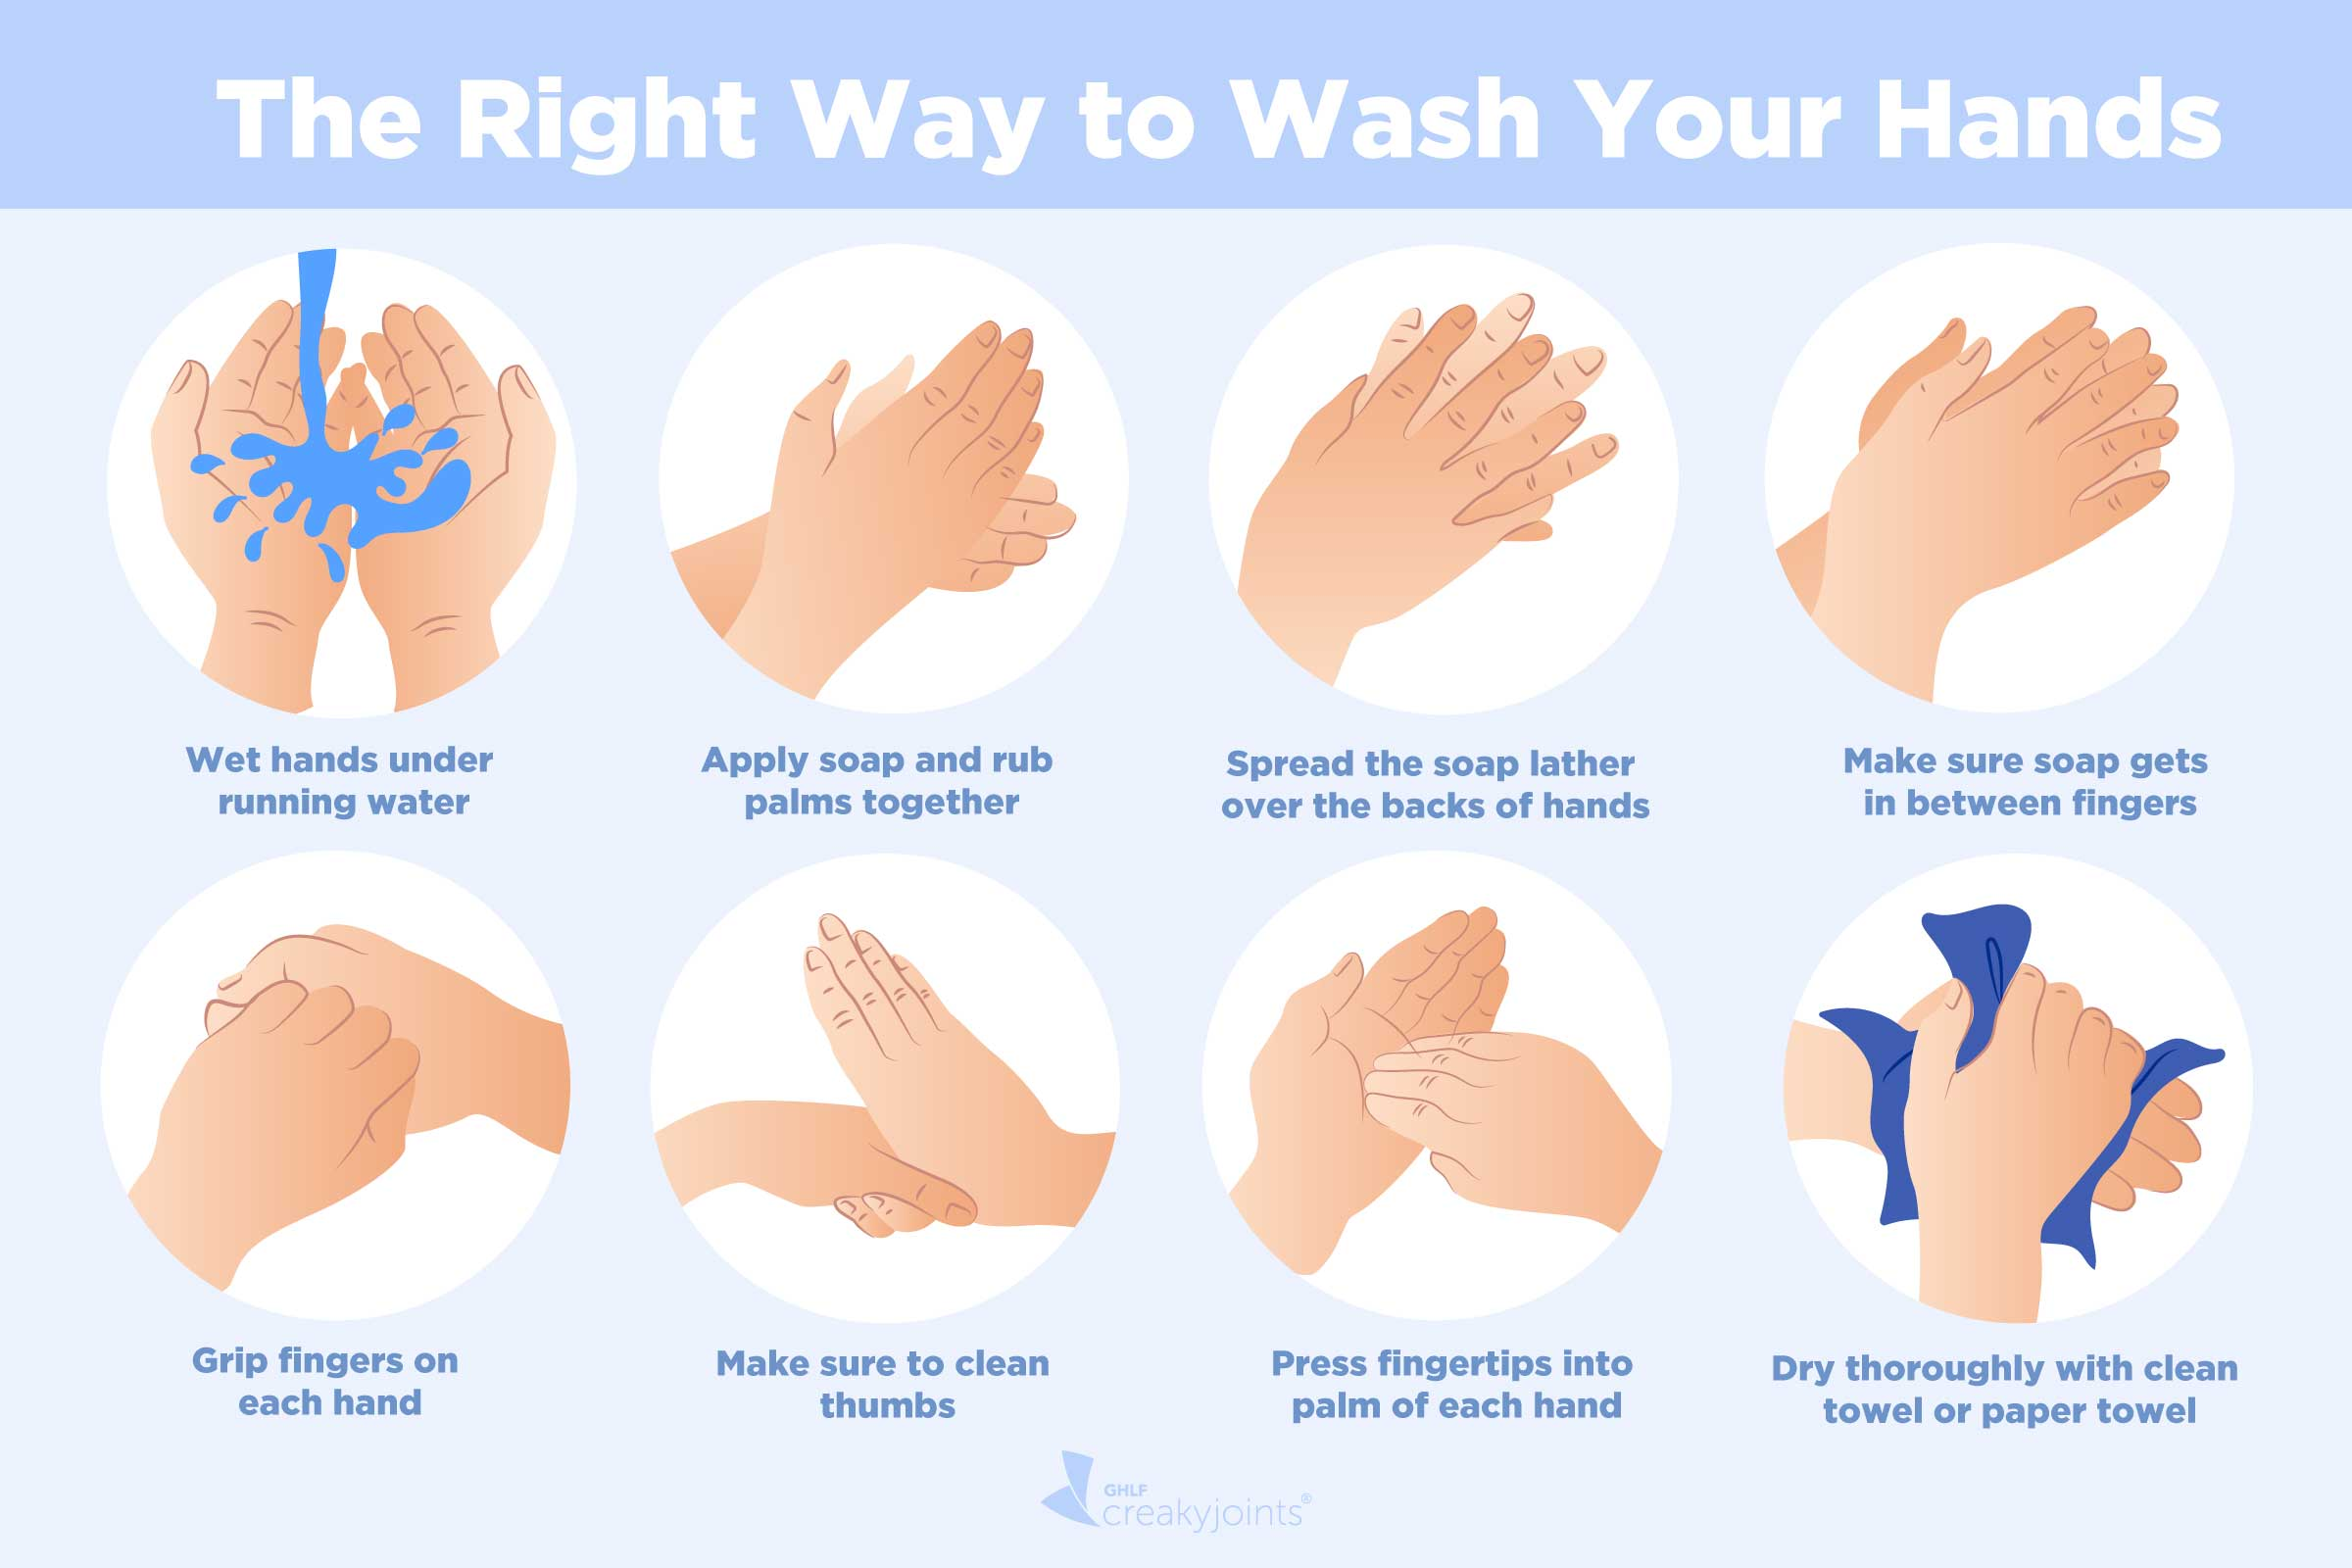 Infographic: How to Wash Your Hands to Help Prevent Coronavirus Spread